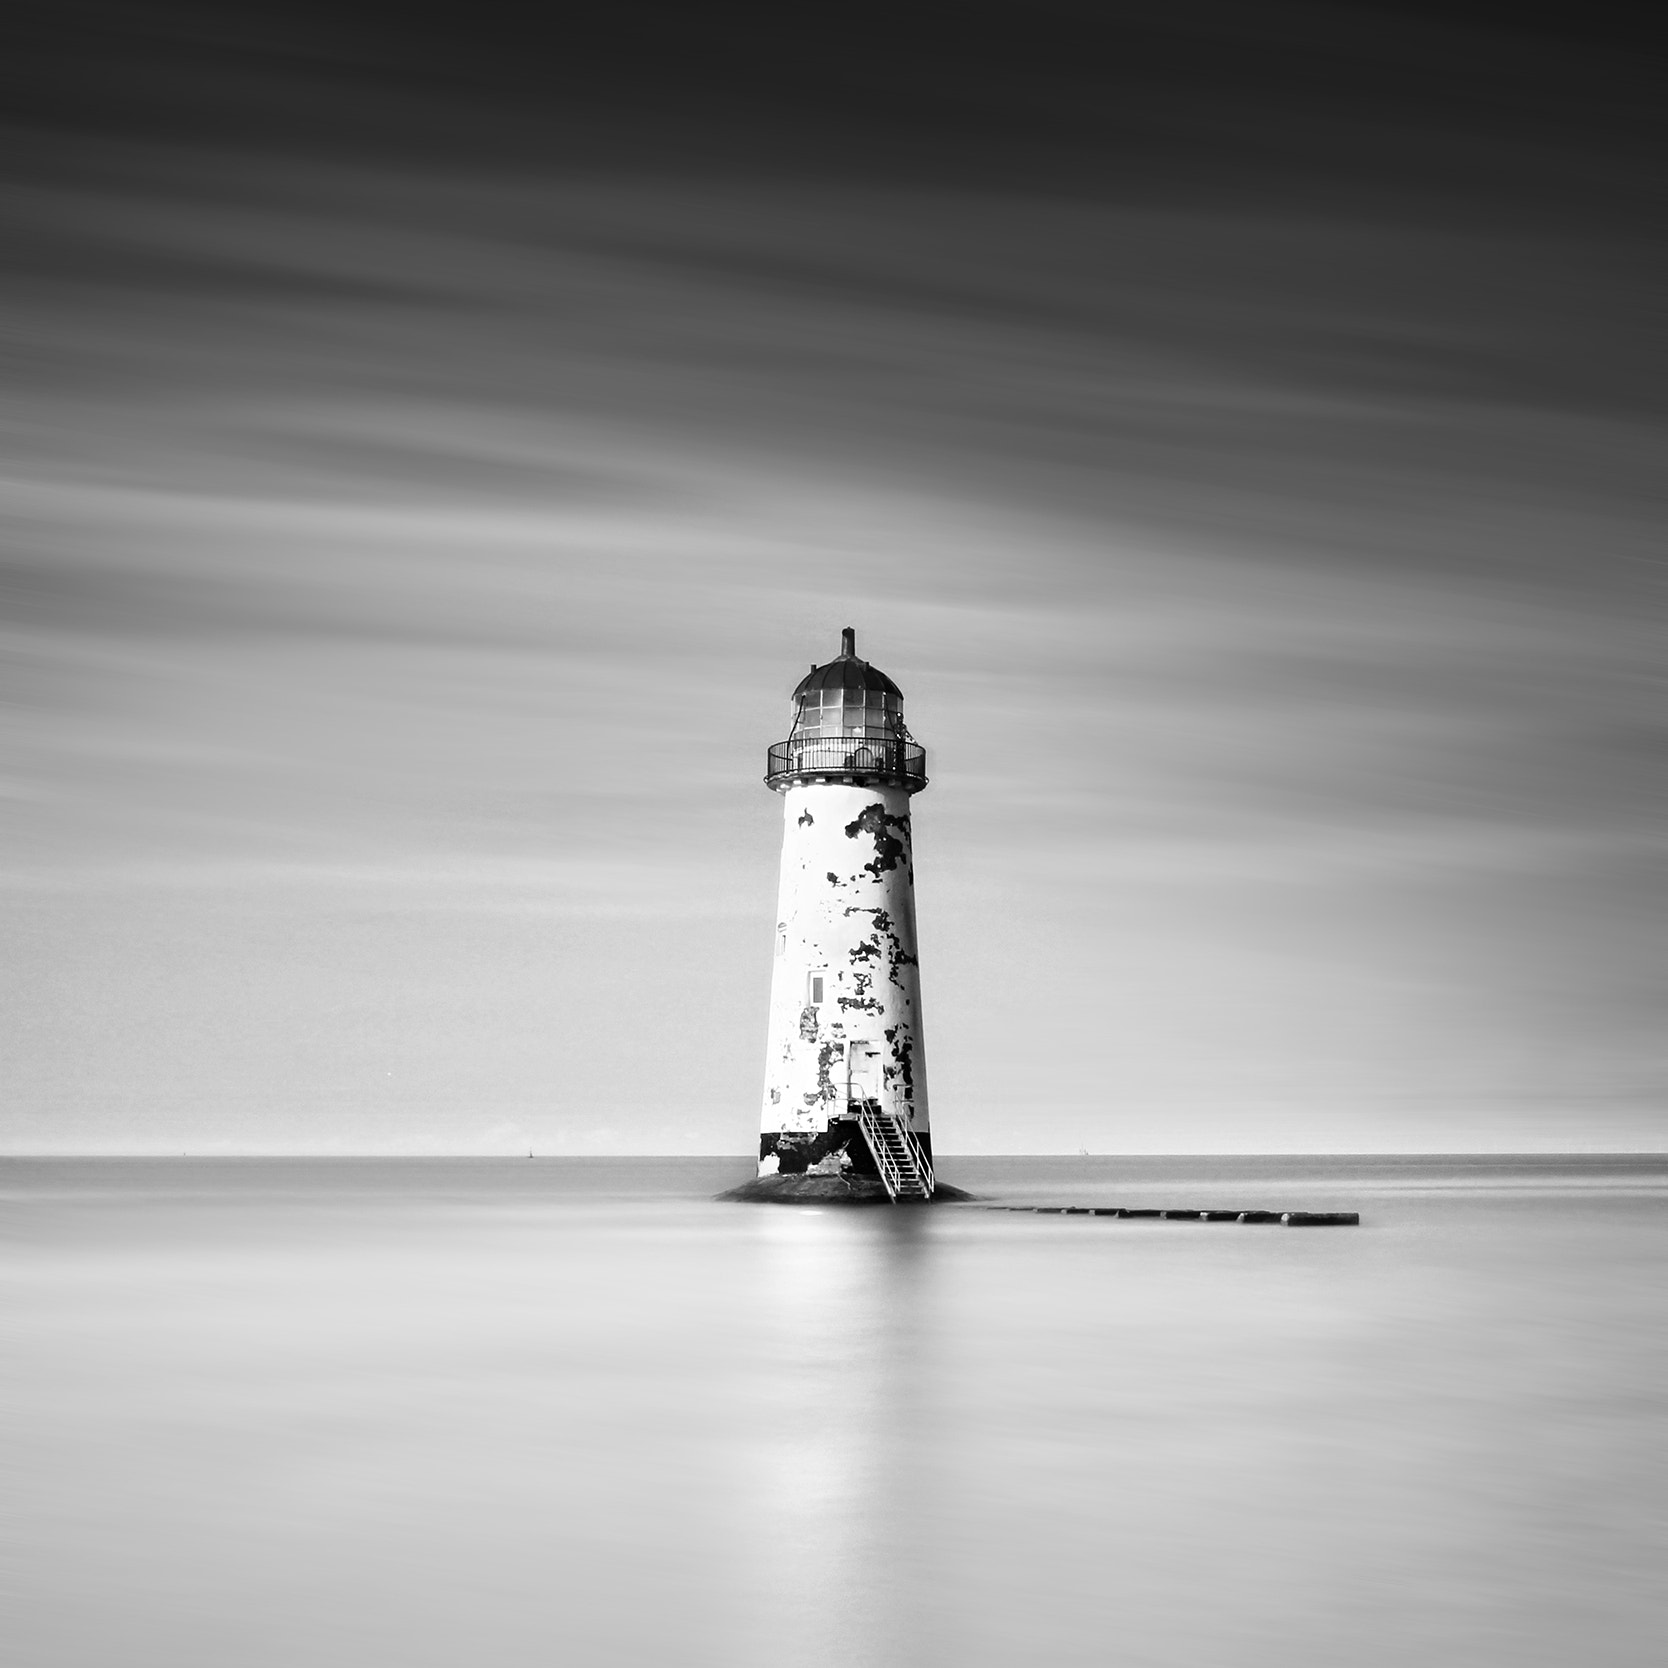 Photograph High tide at Point of ayr by Charlie Pragnell on 500px